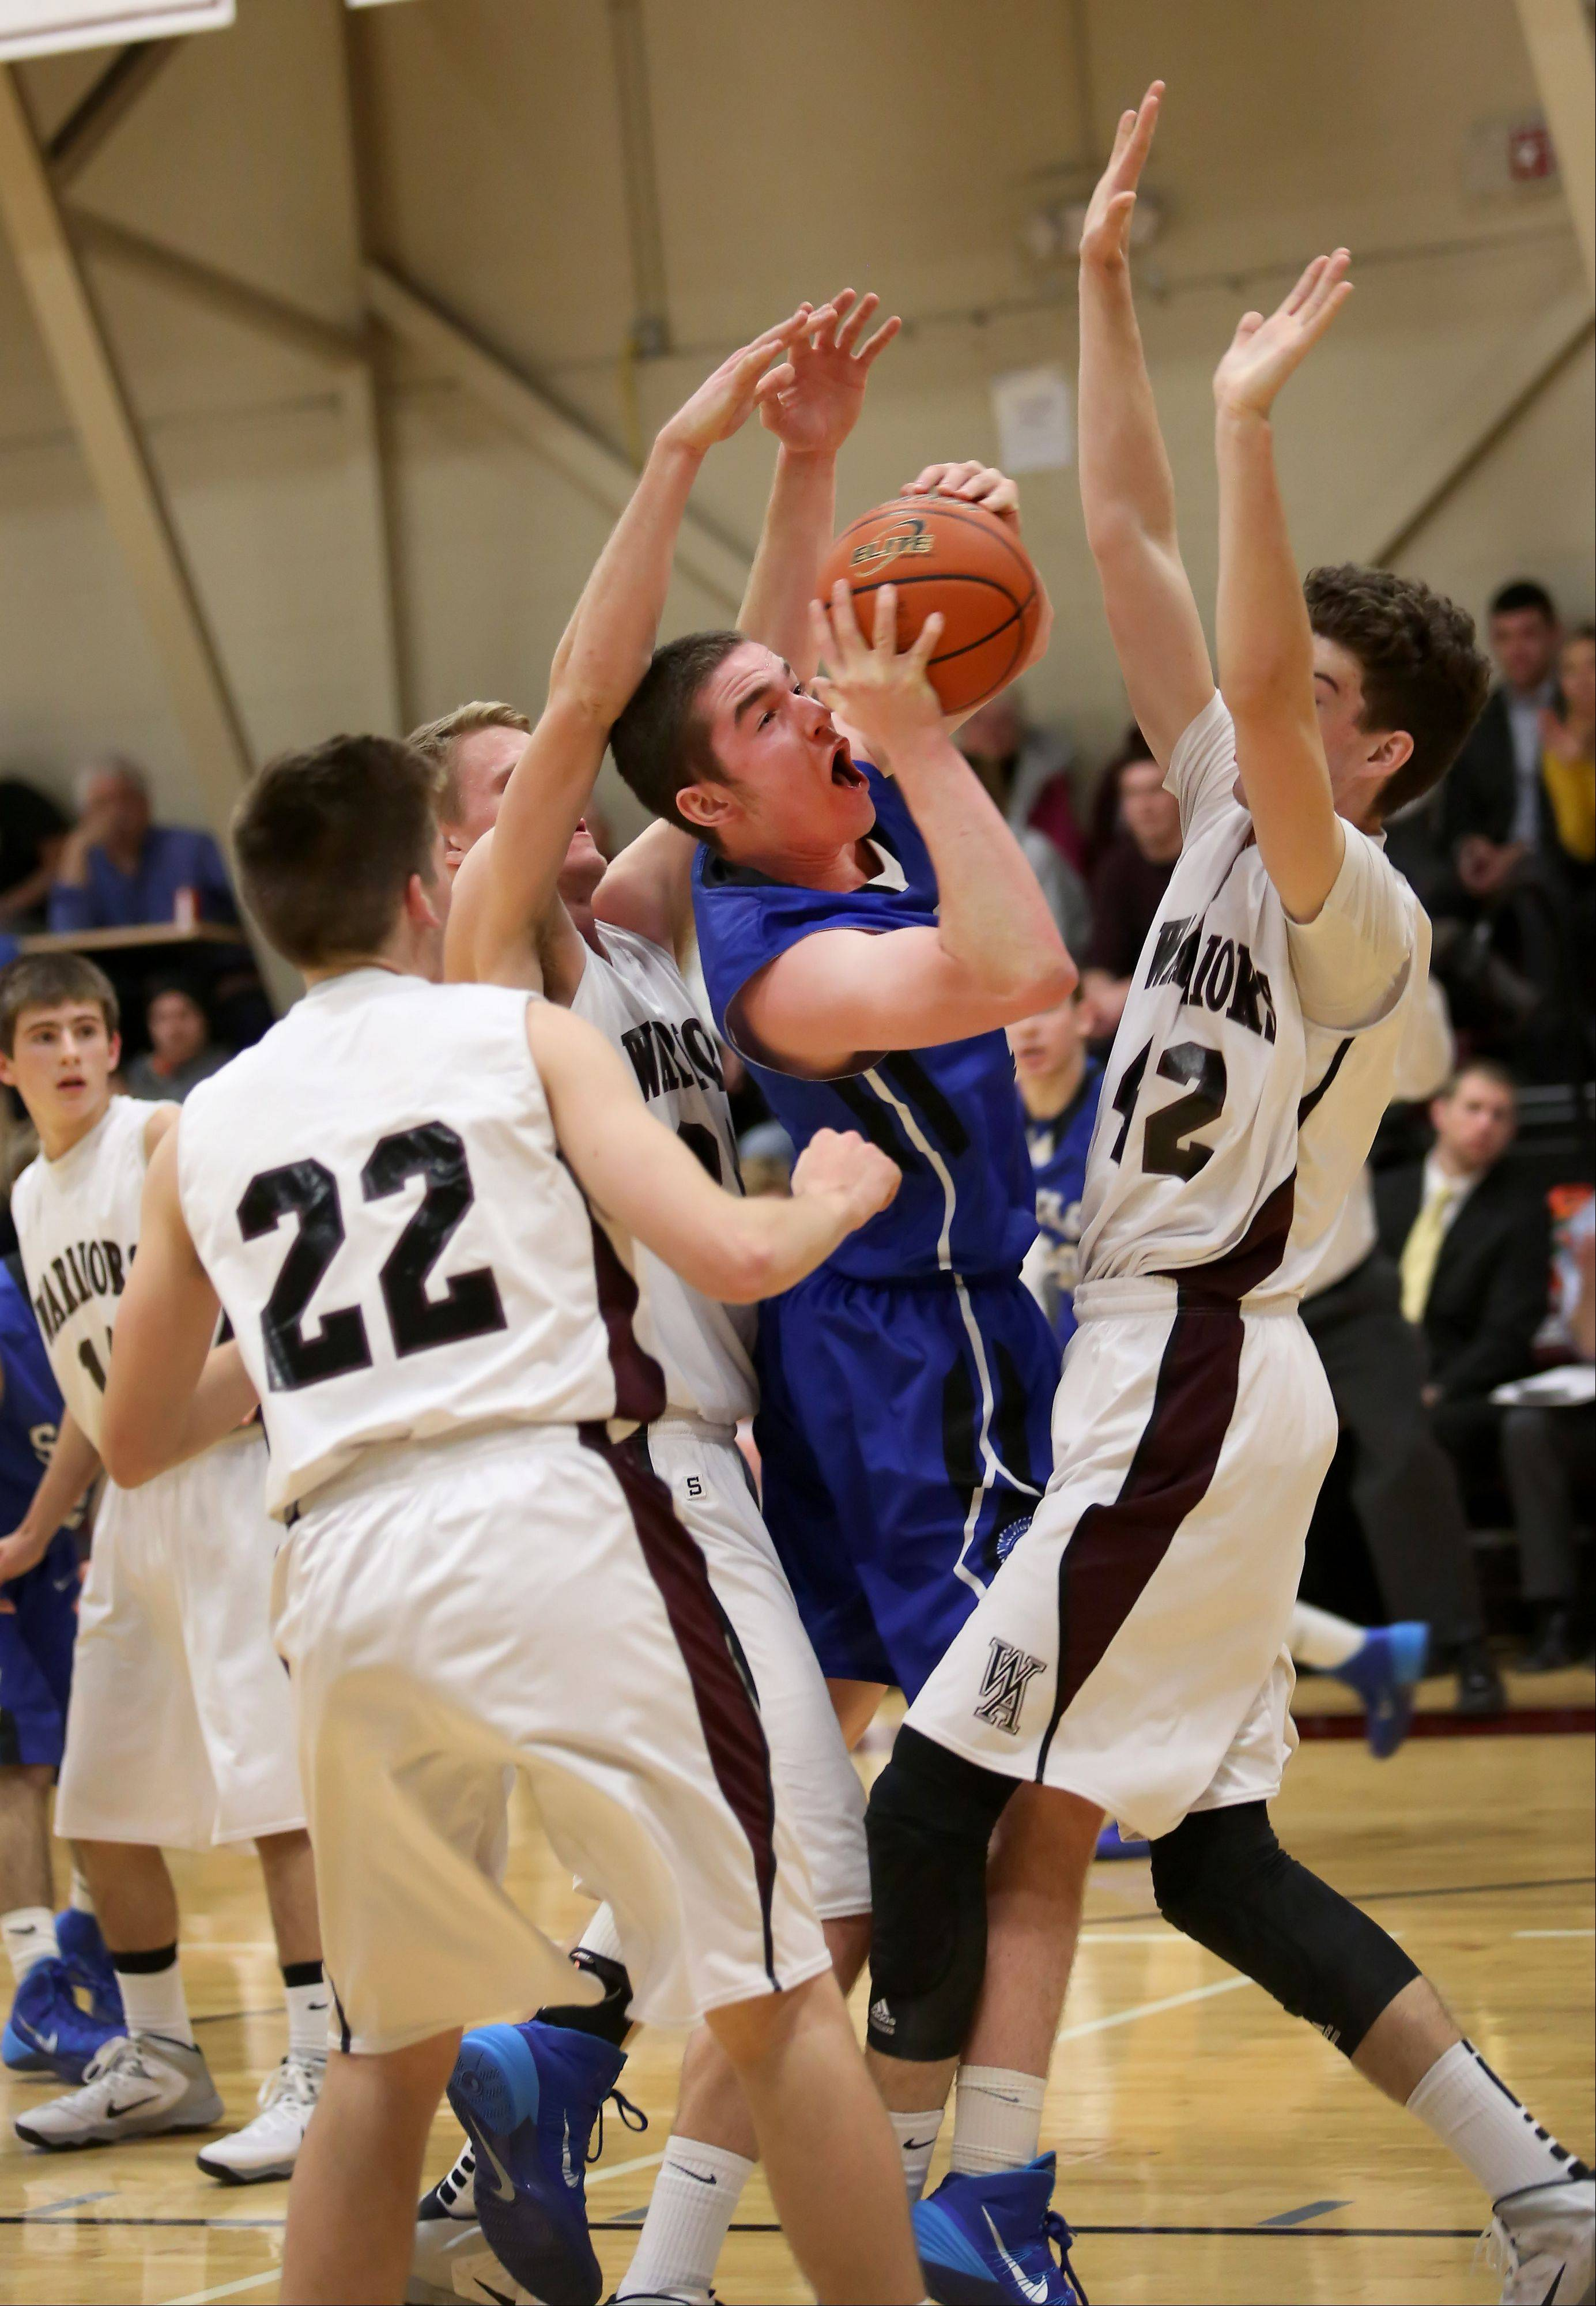 Wheaton Academy defense surrounds Kilian Brown of St. Francis as he tries to shoot the ball during boys basketball in West Chicago on Tuesday.